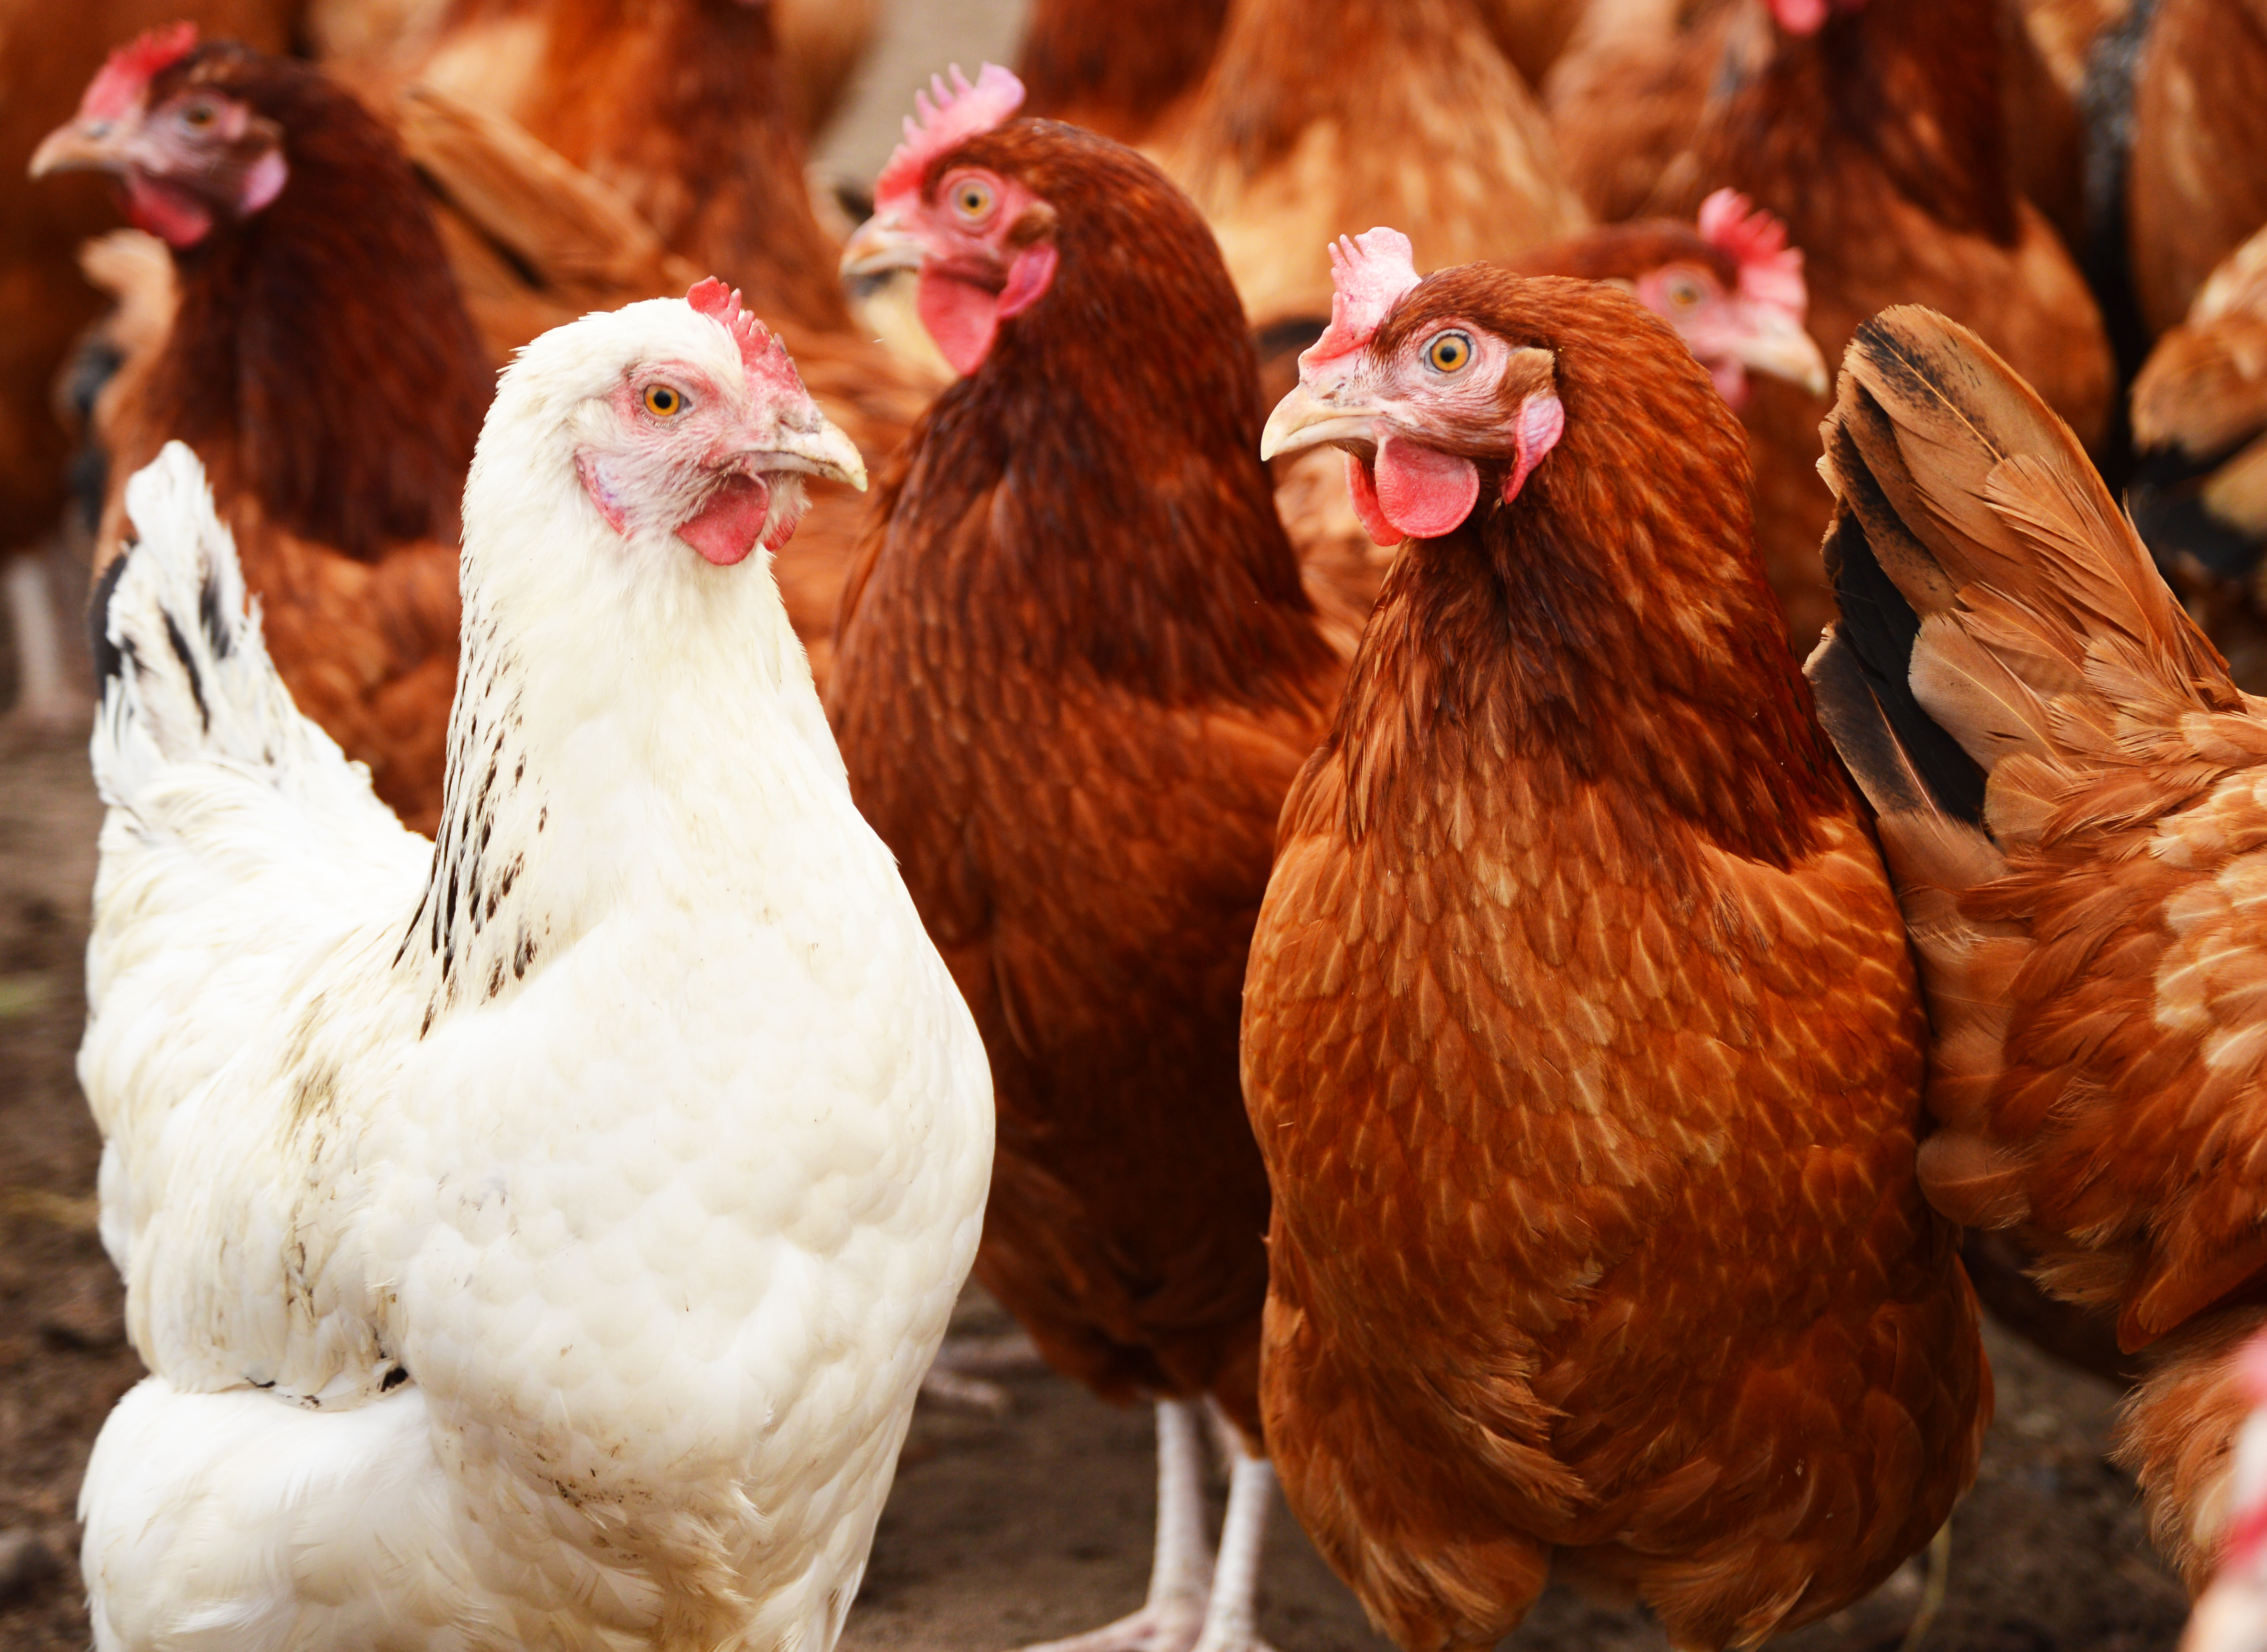 Avian Influenza Risk (Bird Flu, H5N1)